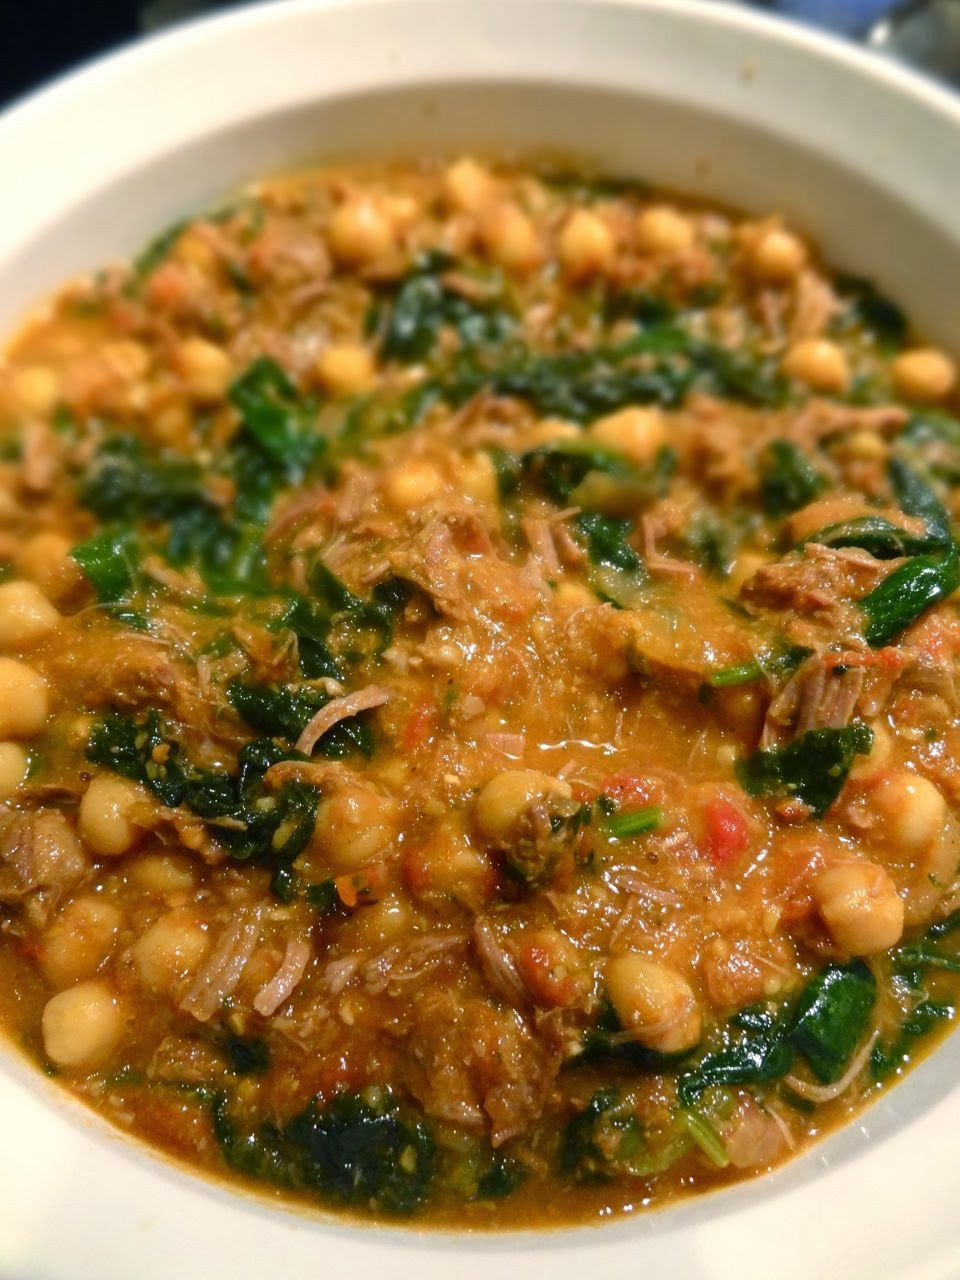 Middle East Lamb Stew  Scrumpdillyicious Middle Eastern Lamb Spinach & Chickpea